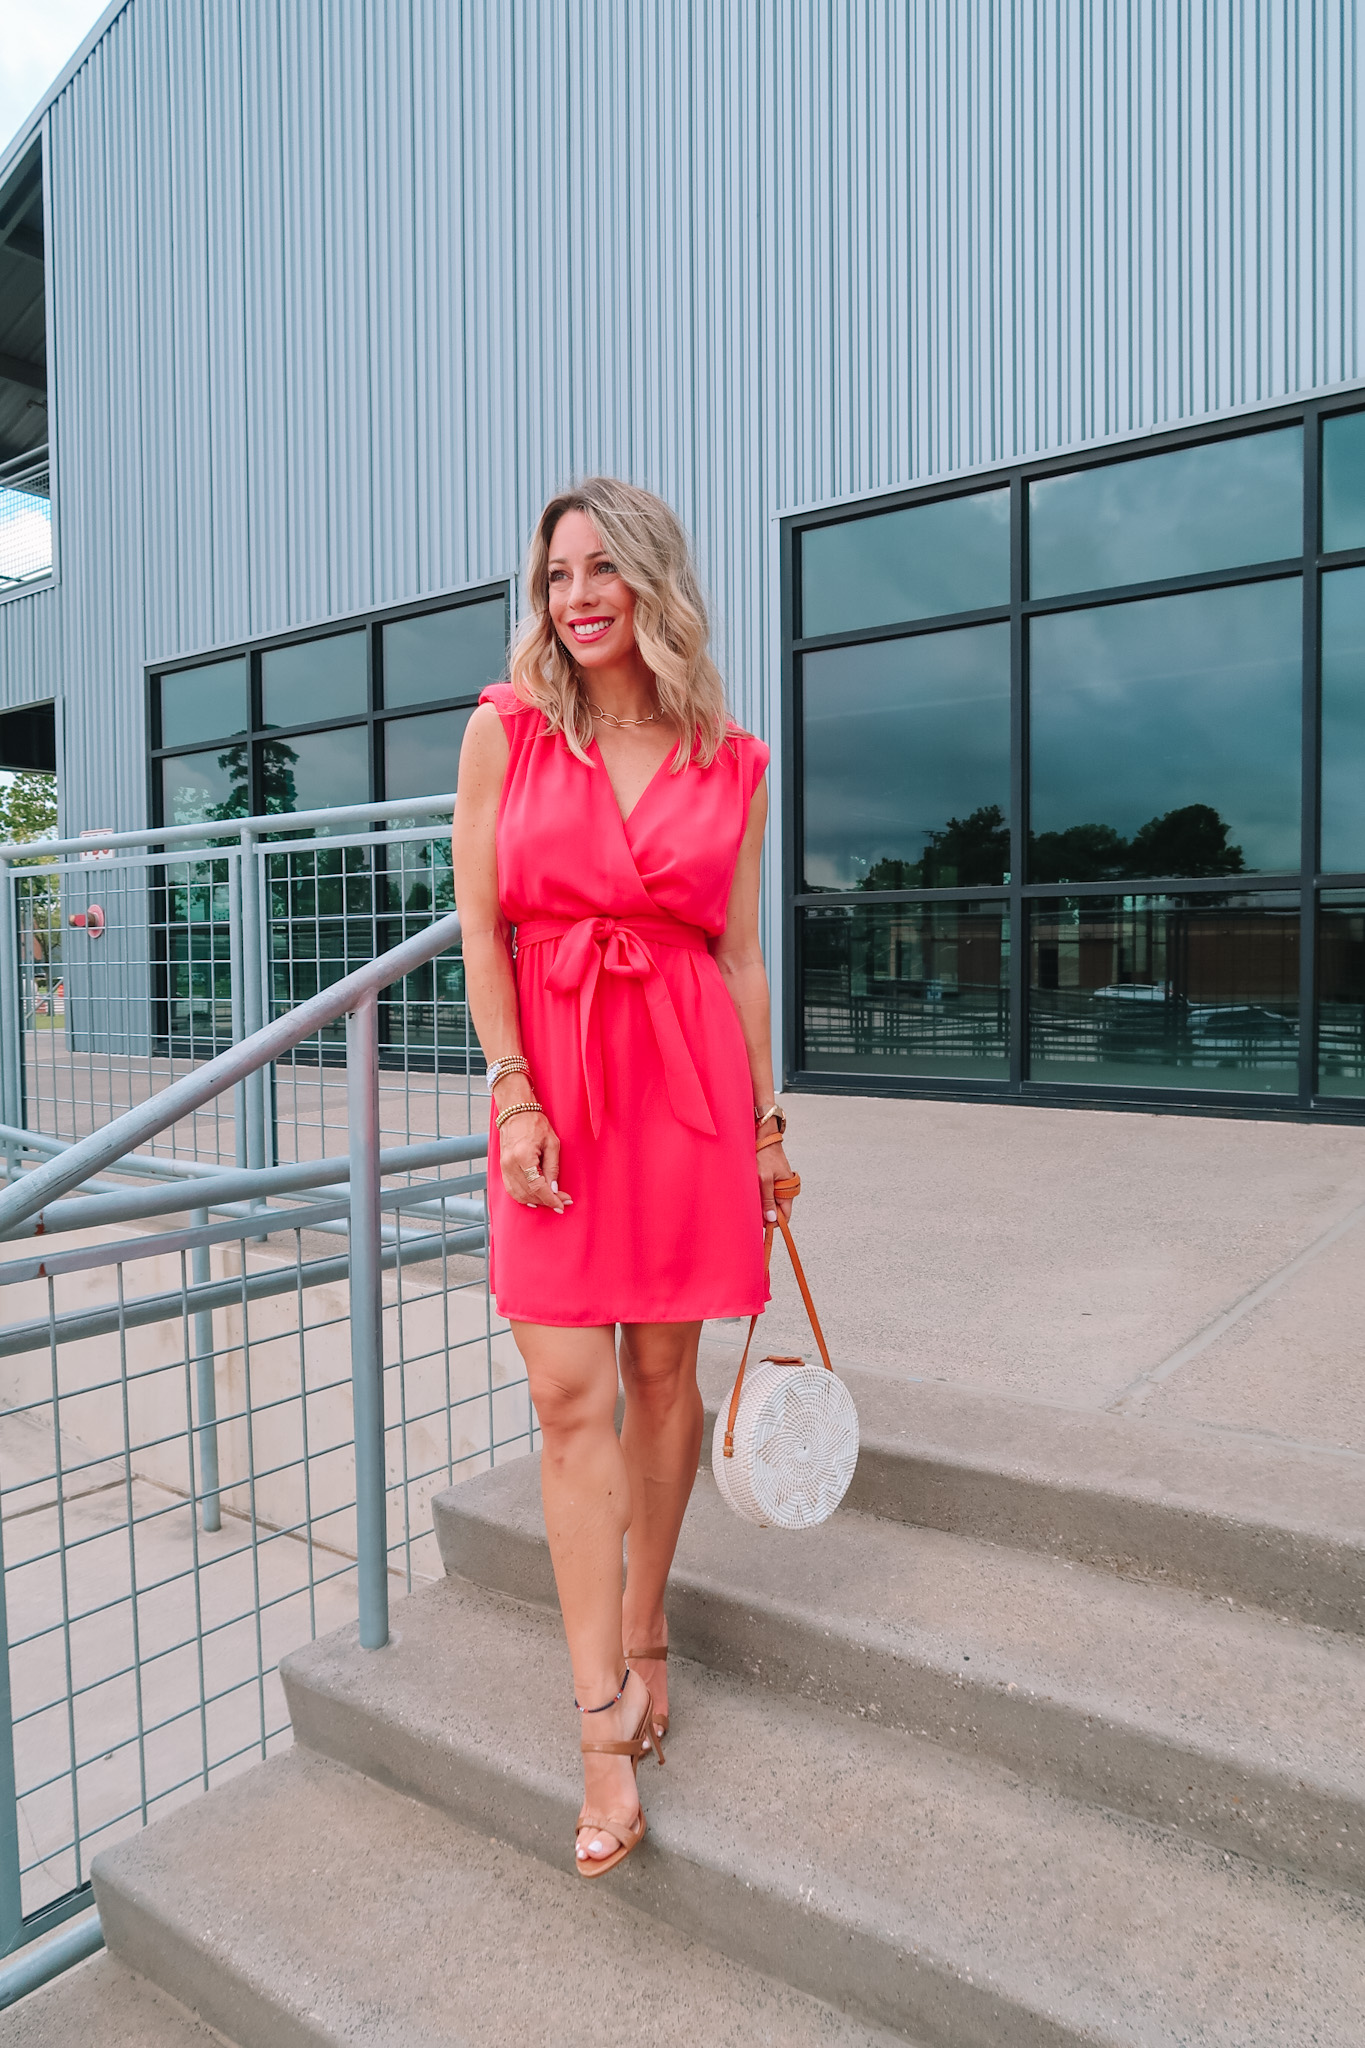 Outfits Lately, Dress, Sandals, Woven Crossbody